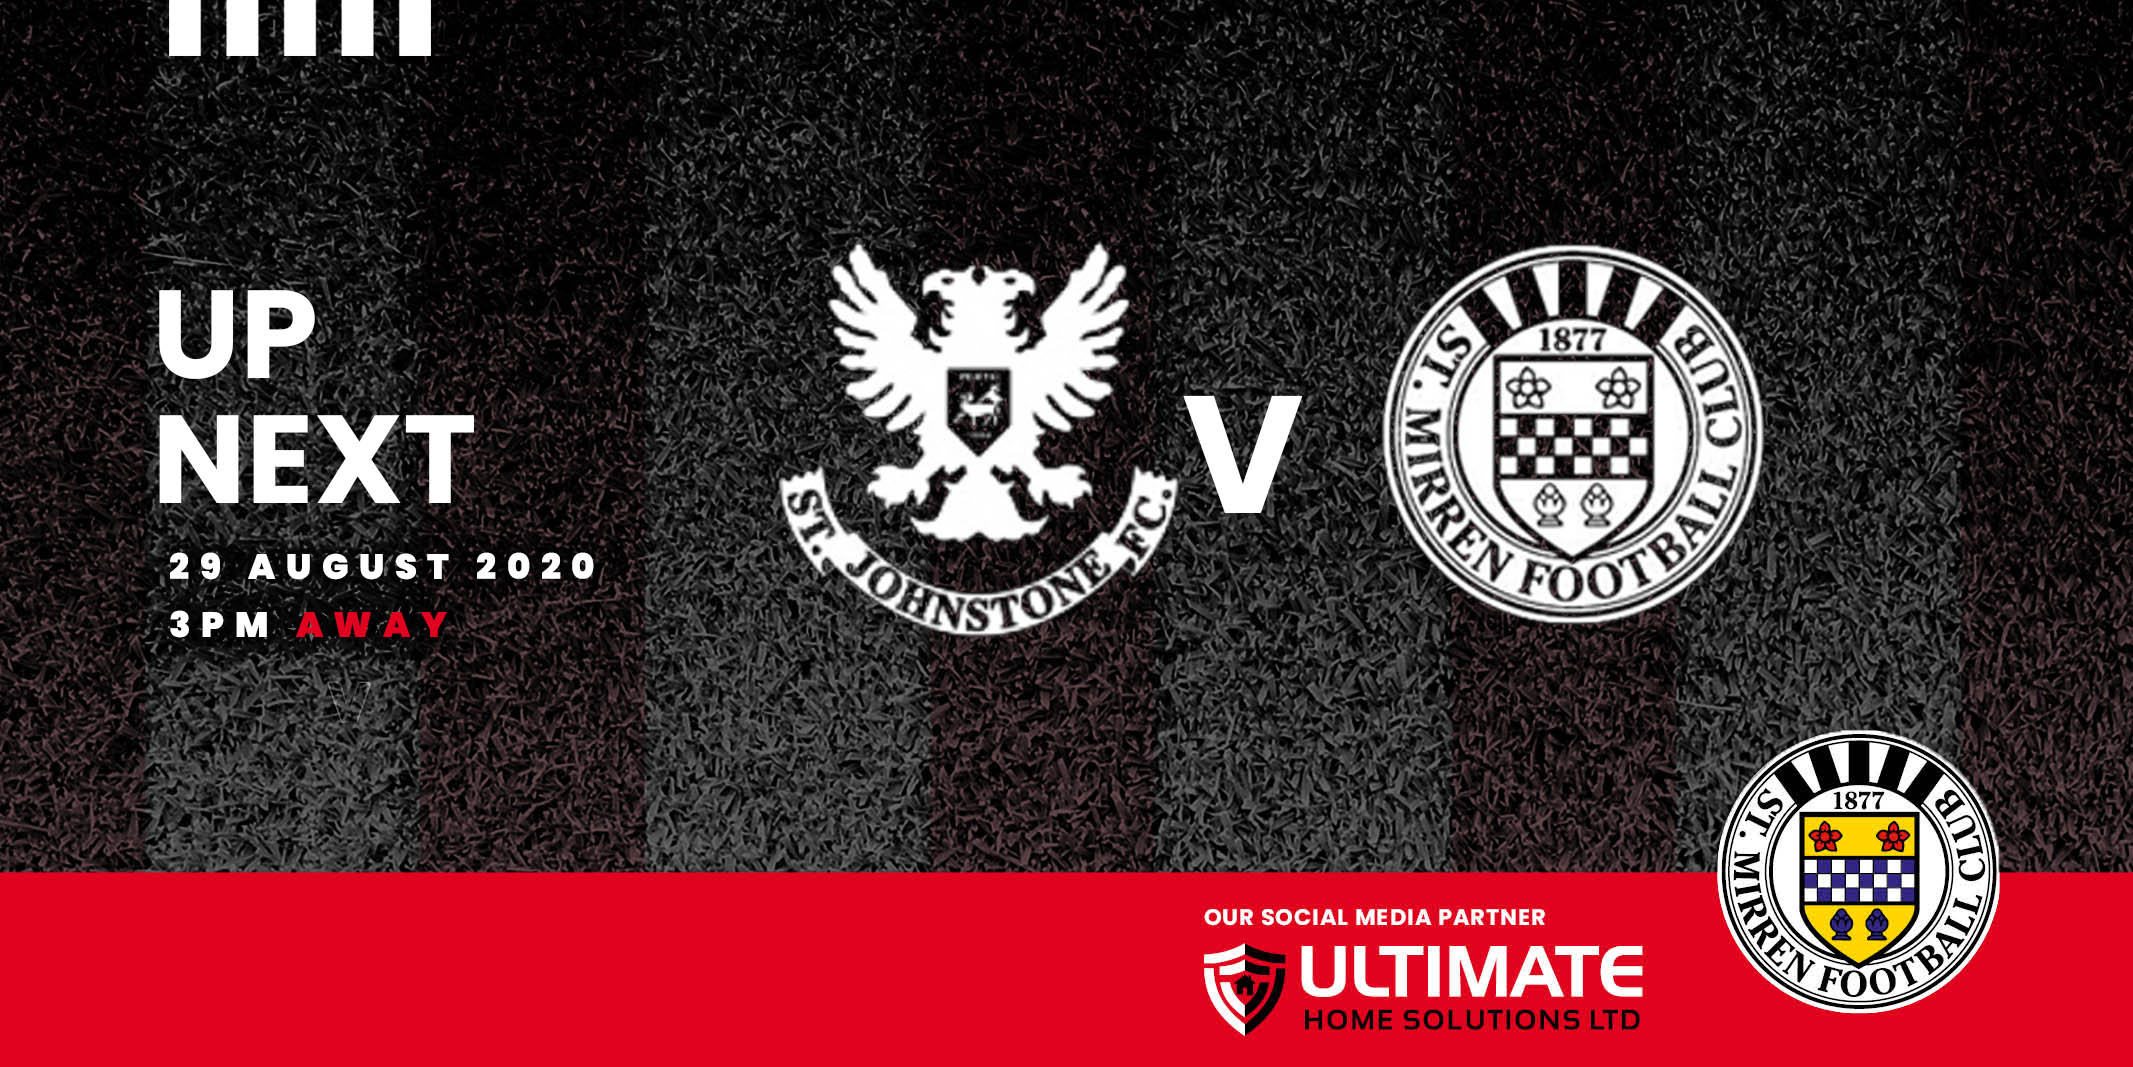 Up next: St Johnstone v St Mirren (29th Aug 2020)